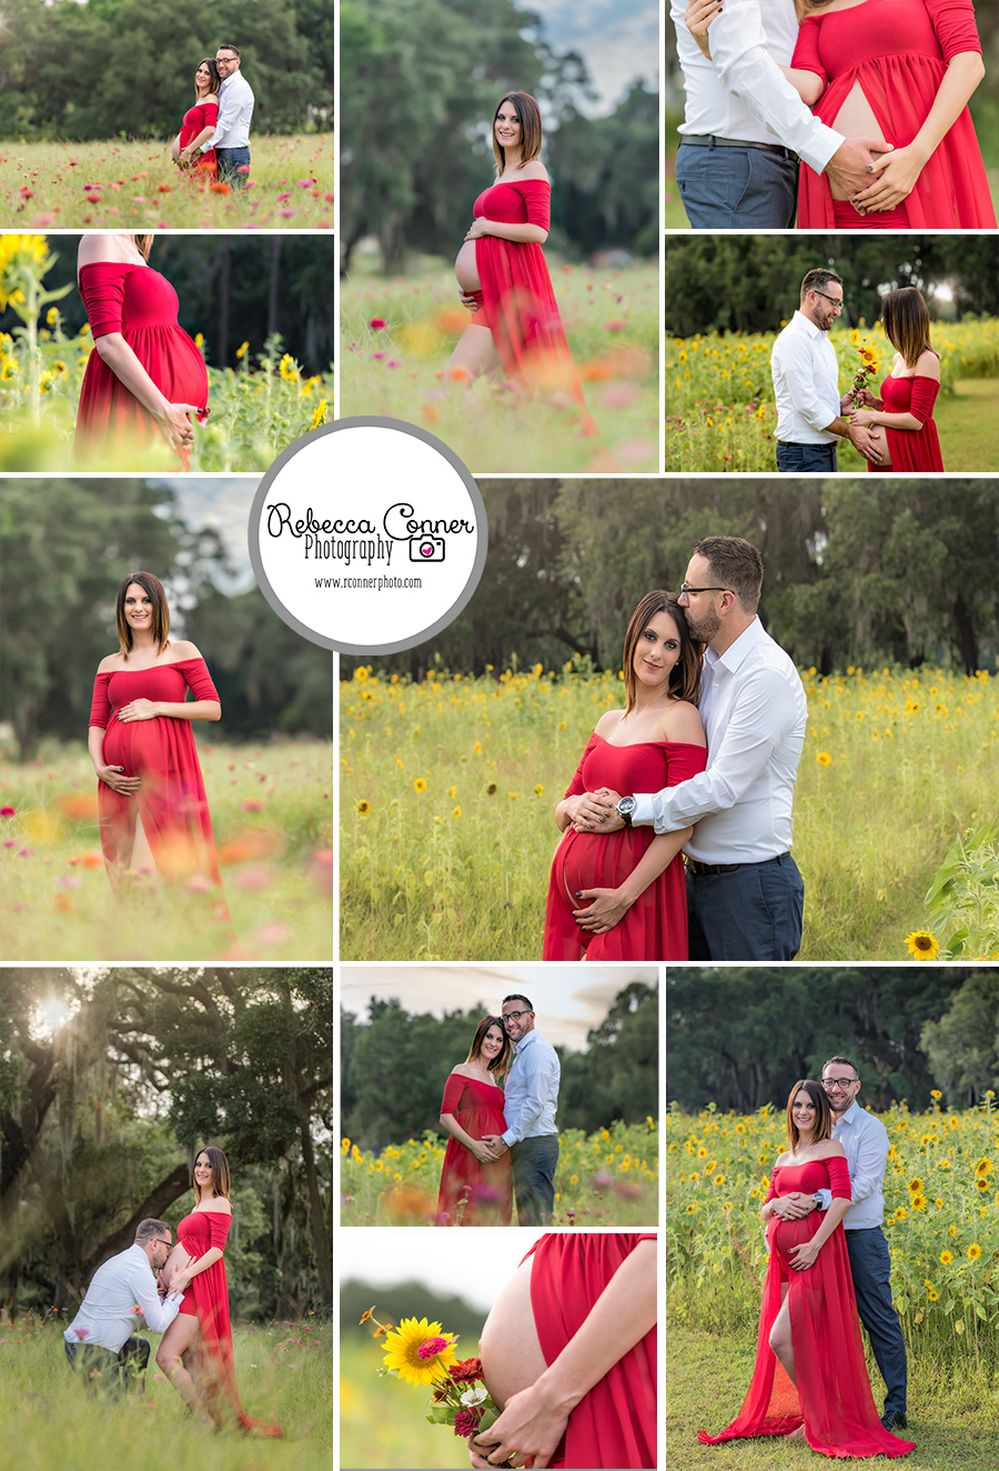 Rebecca Conner Photography, Tampa, FL Maternity Photography, Sew ...